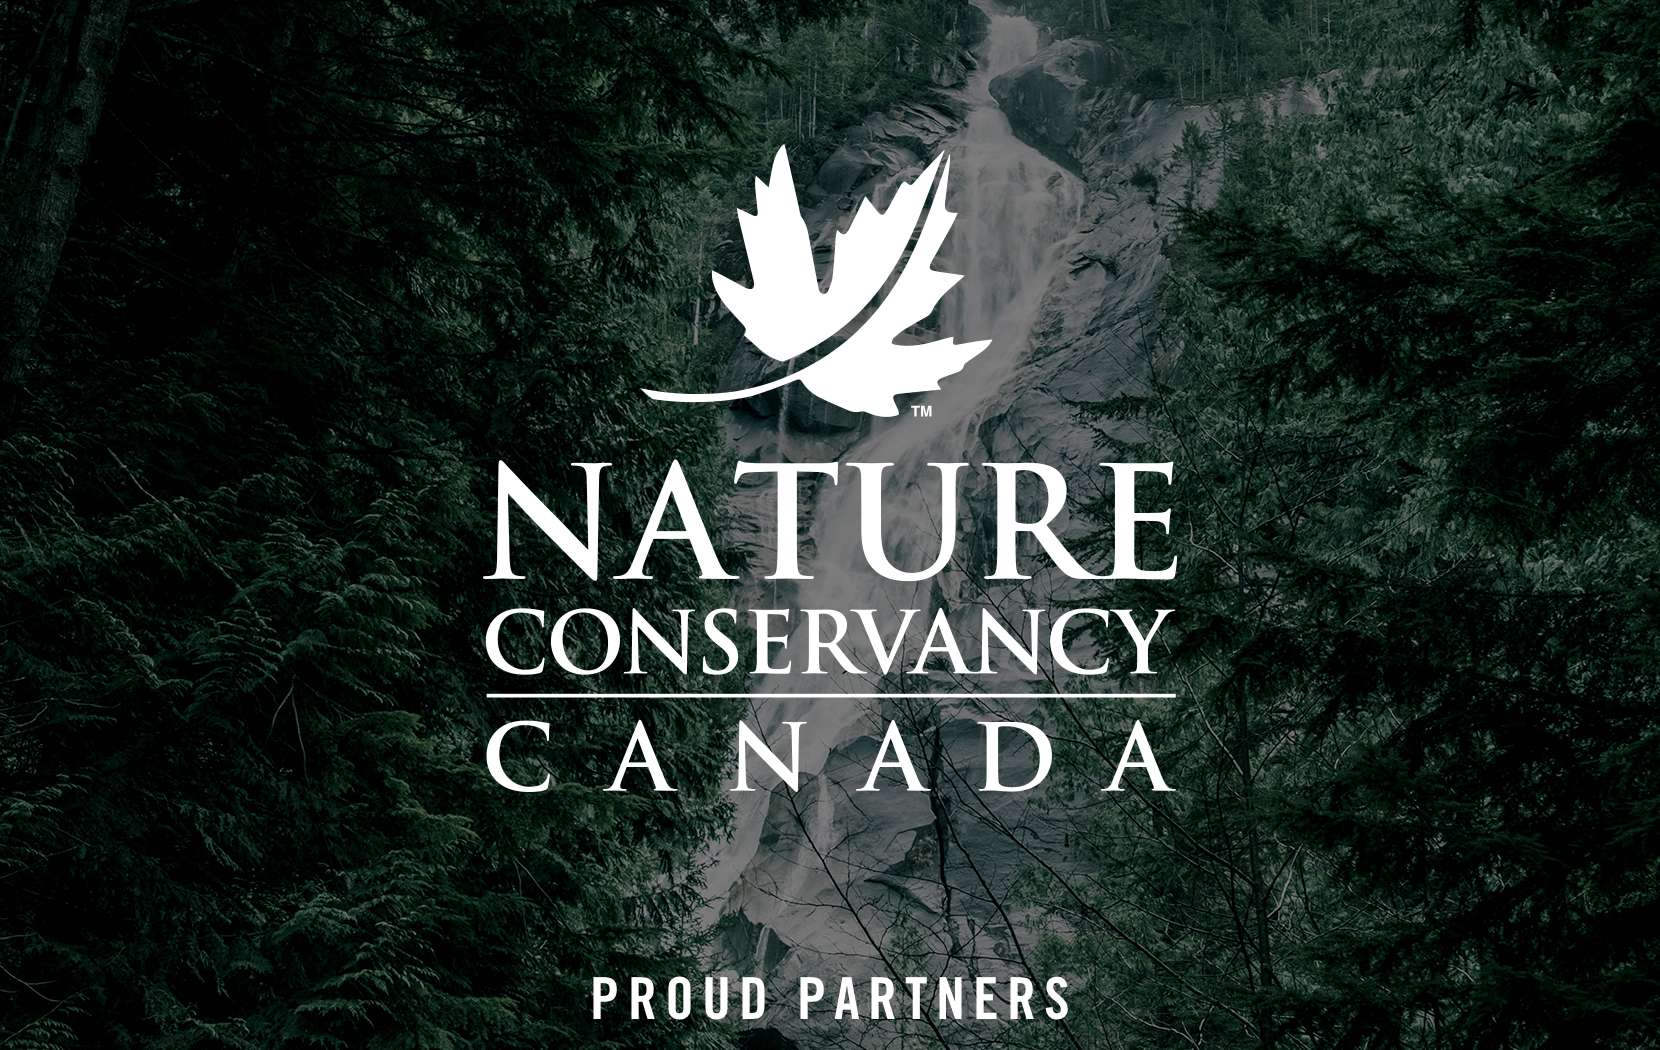 Nature Conservancy of Canada (NCC), our partners.